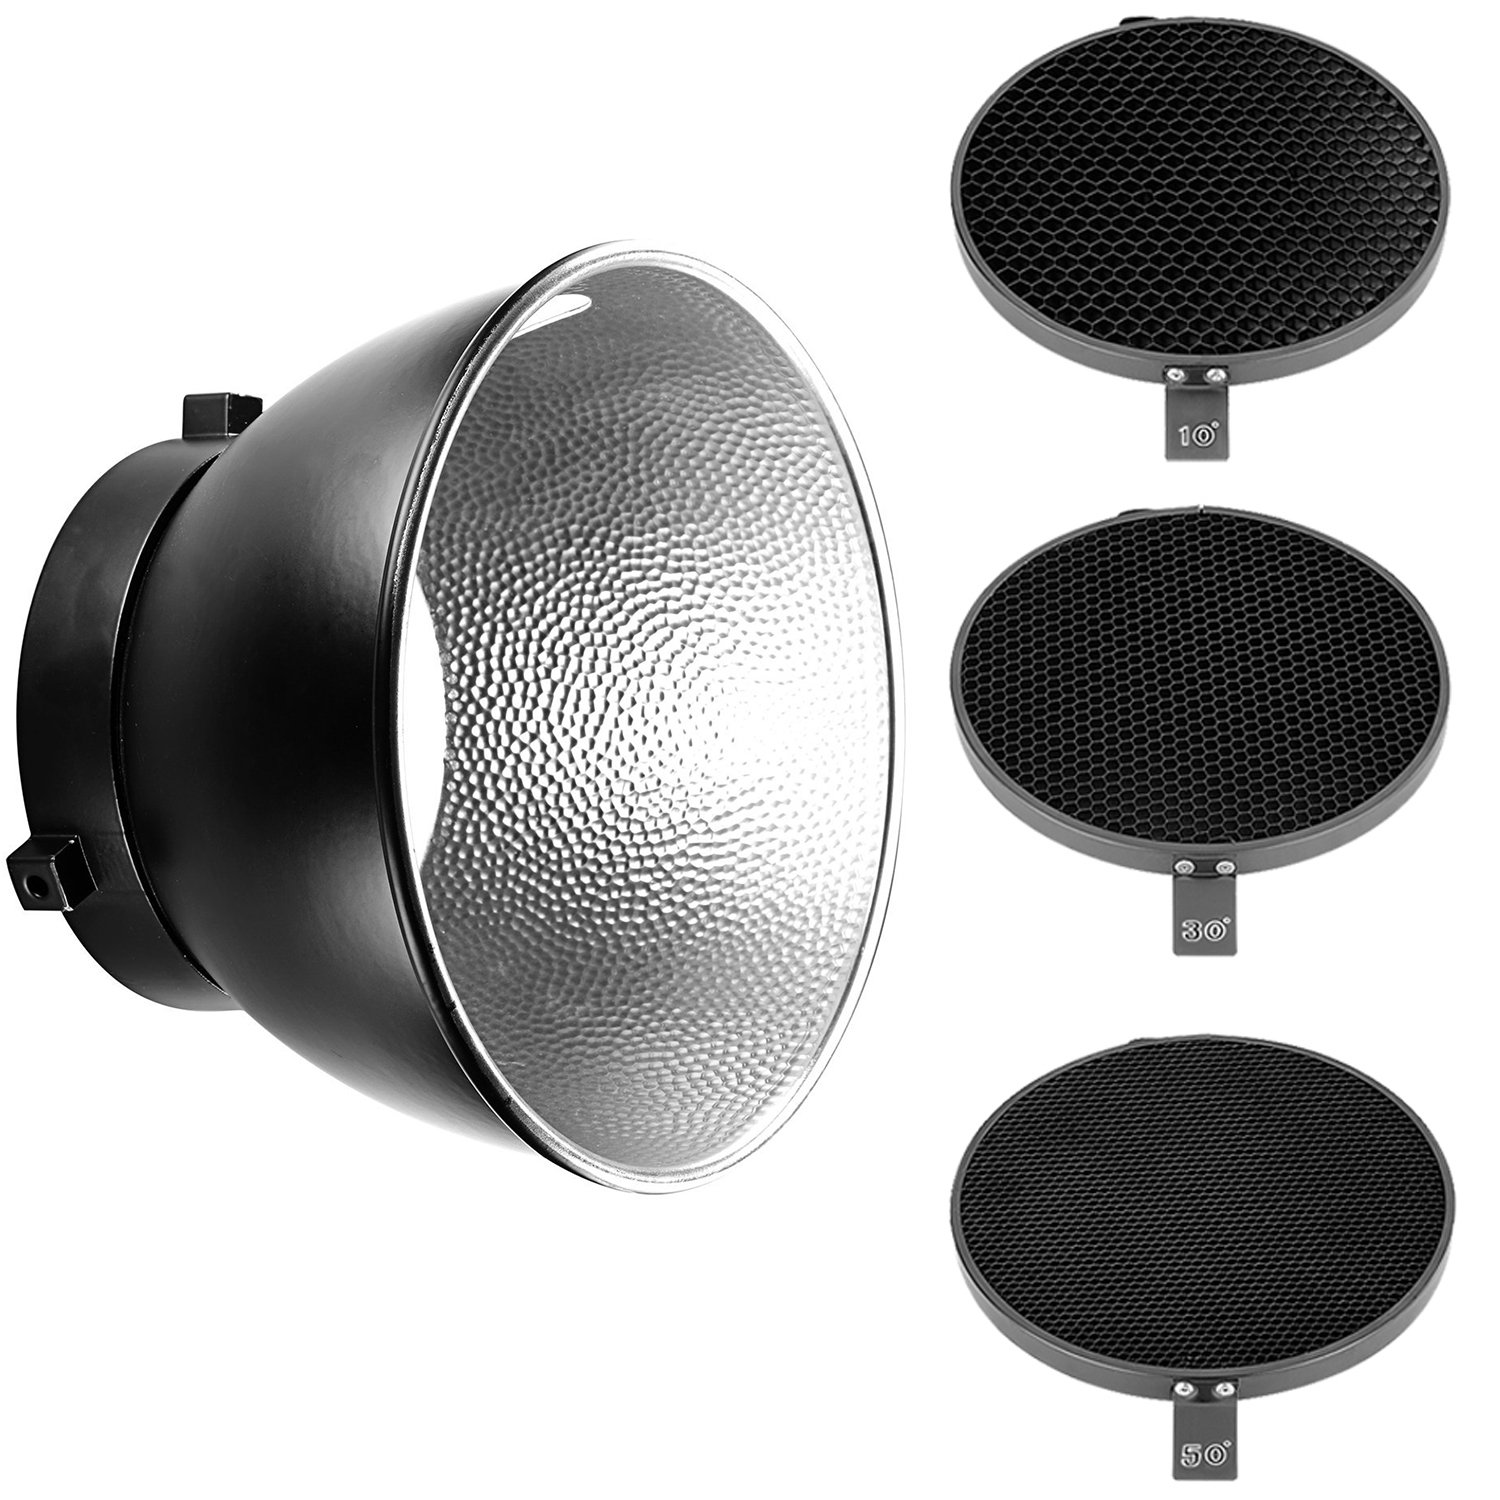 Neewer 7inch/ 18cm Standard Reflector Diffuser with 10/30/50 Degree Honeycomb Grid for Bowens Mount Studio Light Strobe Flash by Neewer